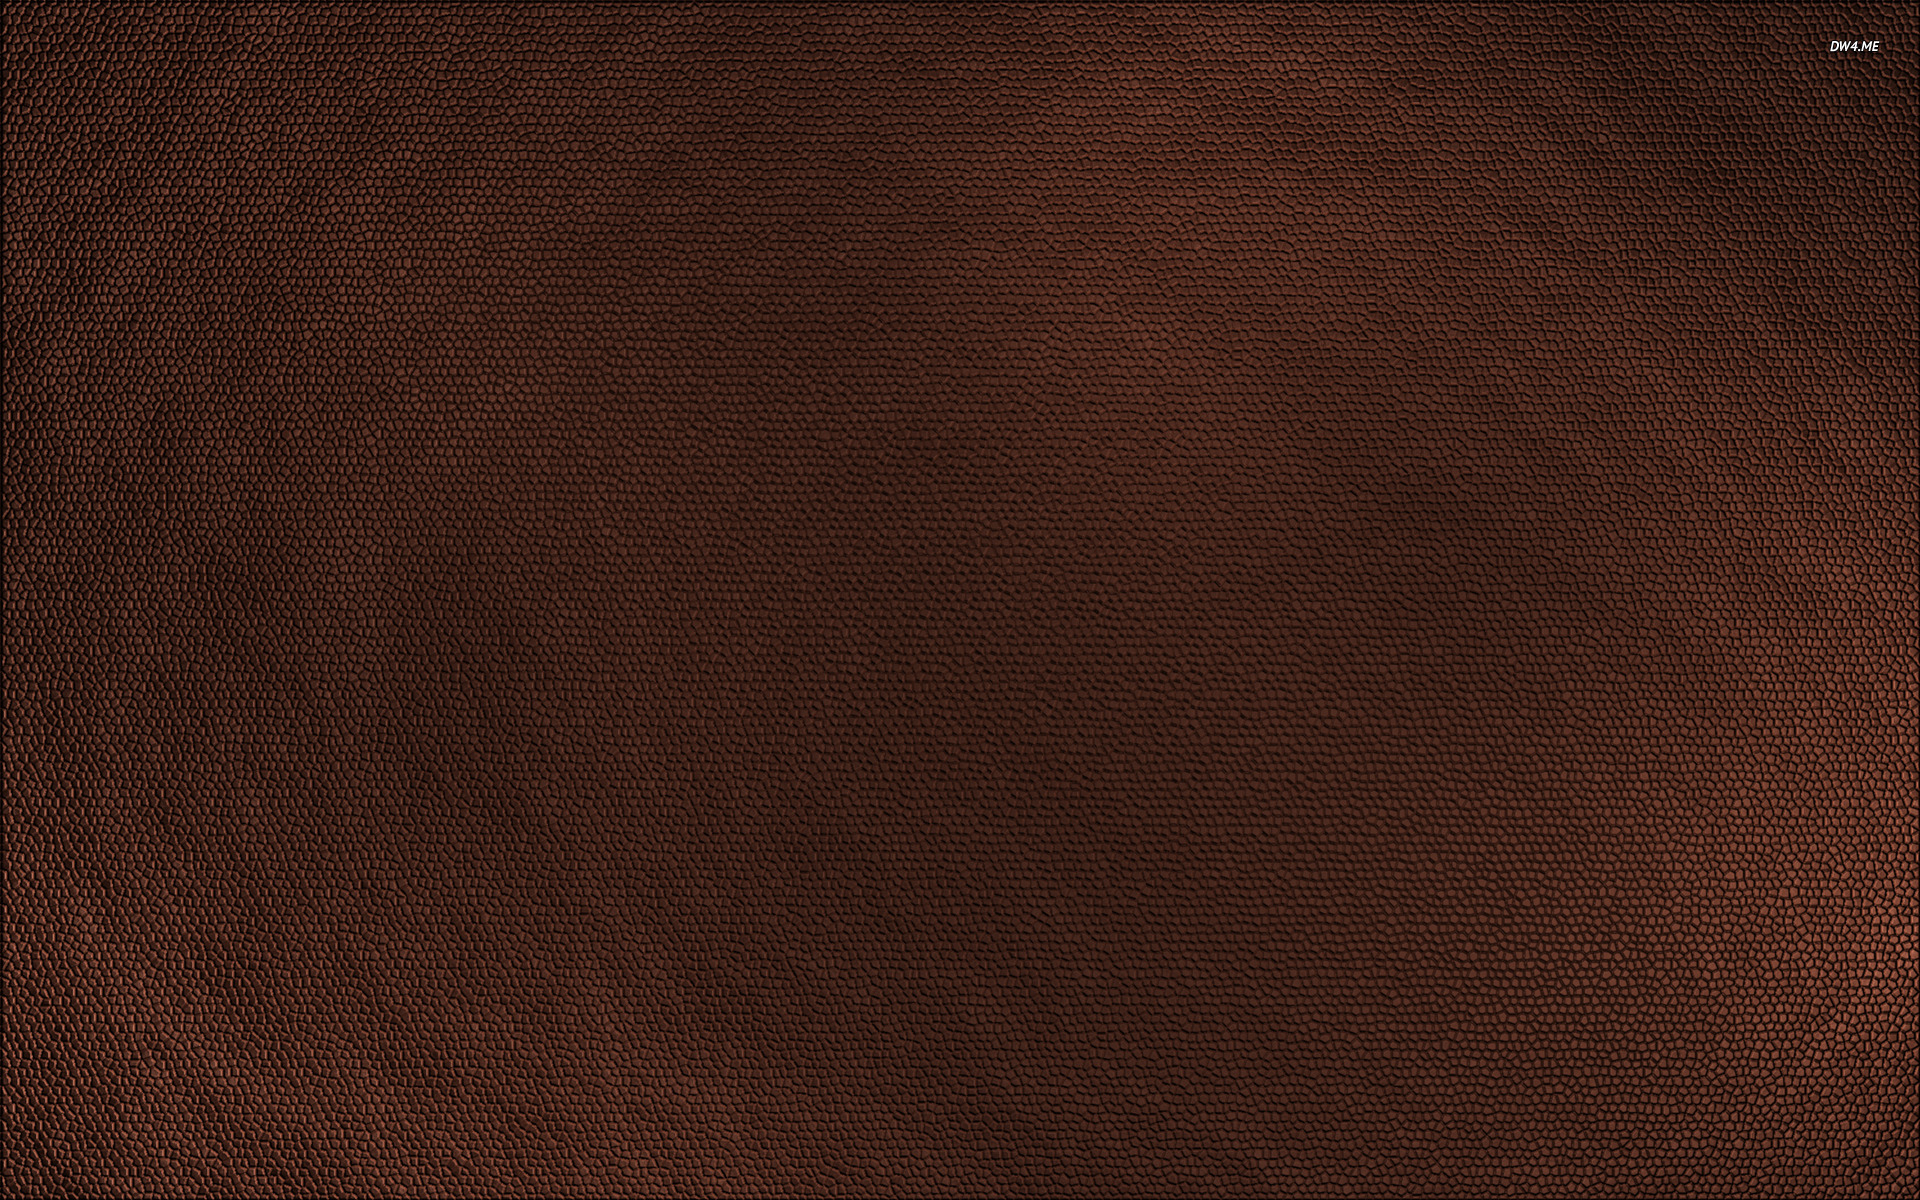 Brown leather wallpaper   Minimalistic wallpapers   832 1920x1200